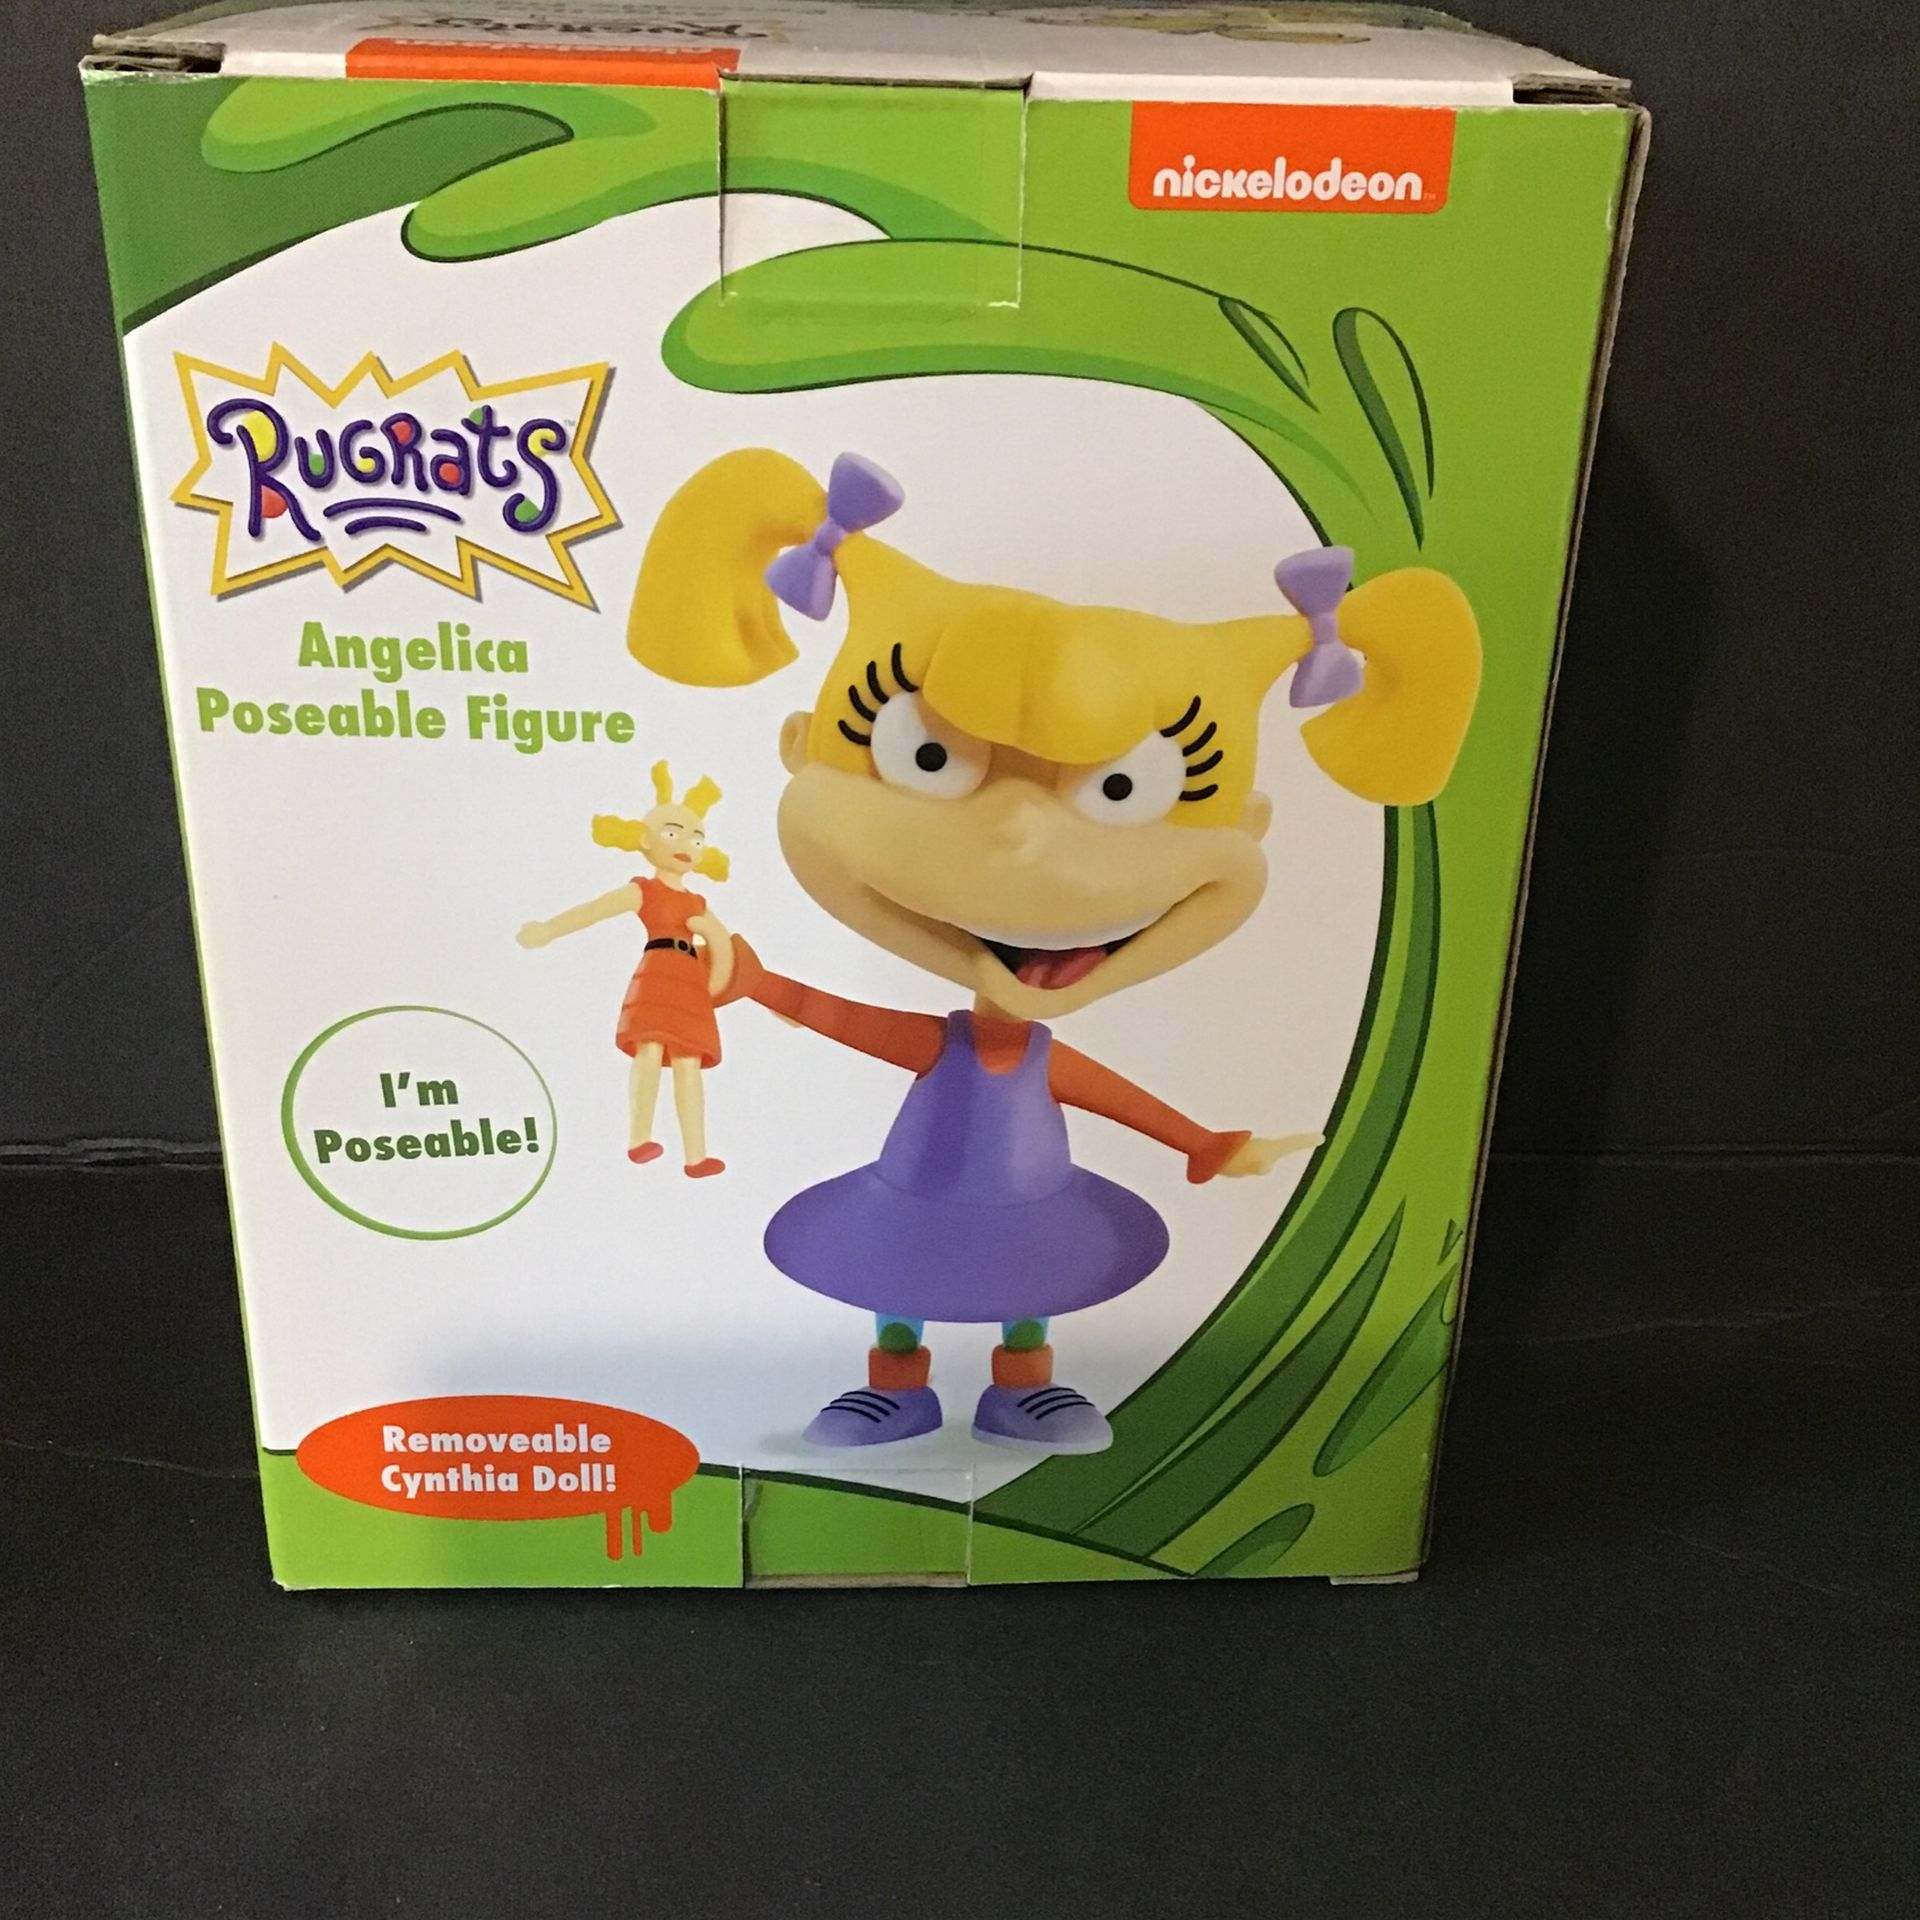 Nickelodeon Just Play - Rugrats Angelica Collectible Figure (Brand New)